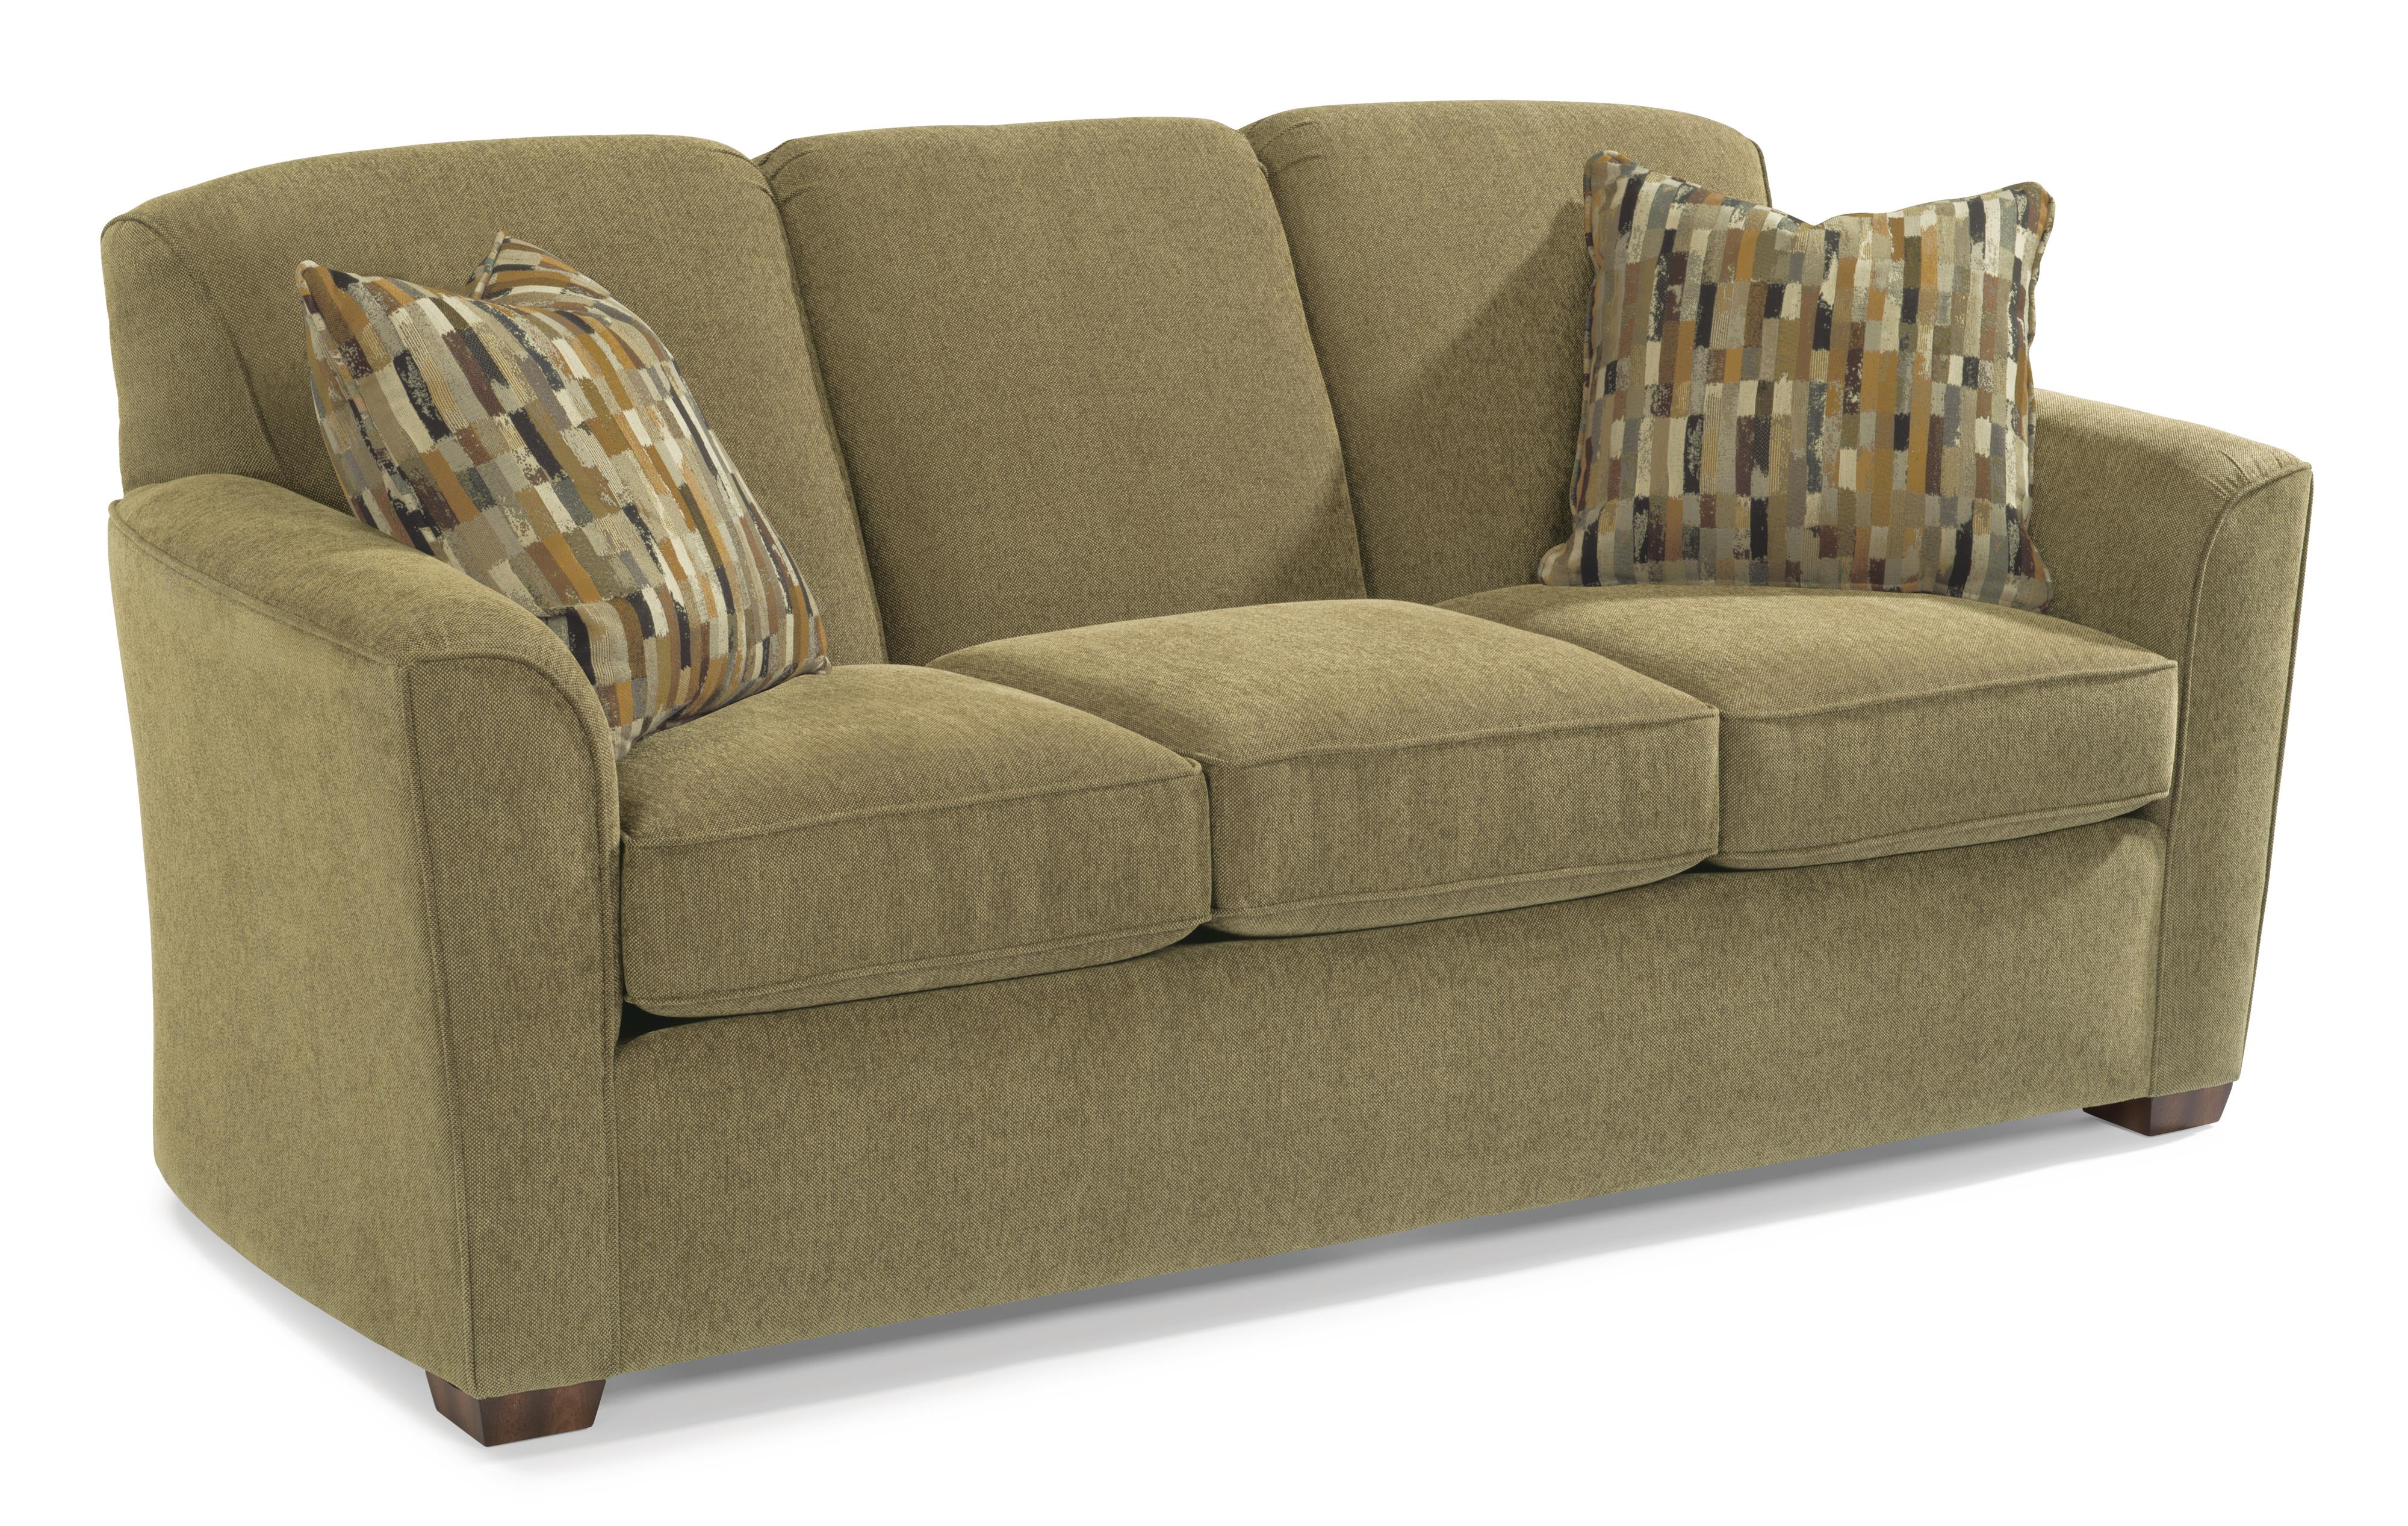 sofa mart lakewood arhaus sleeper flexsteel queen boulevard home